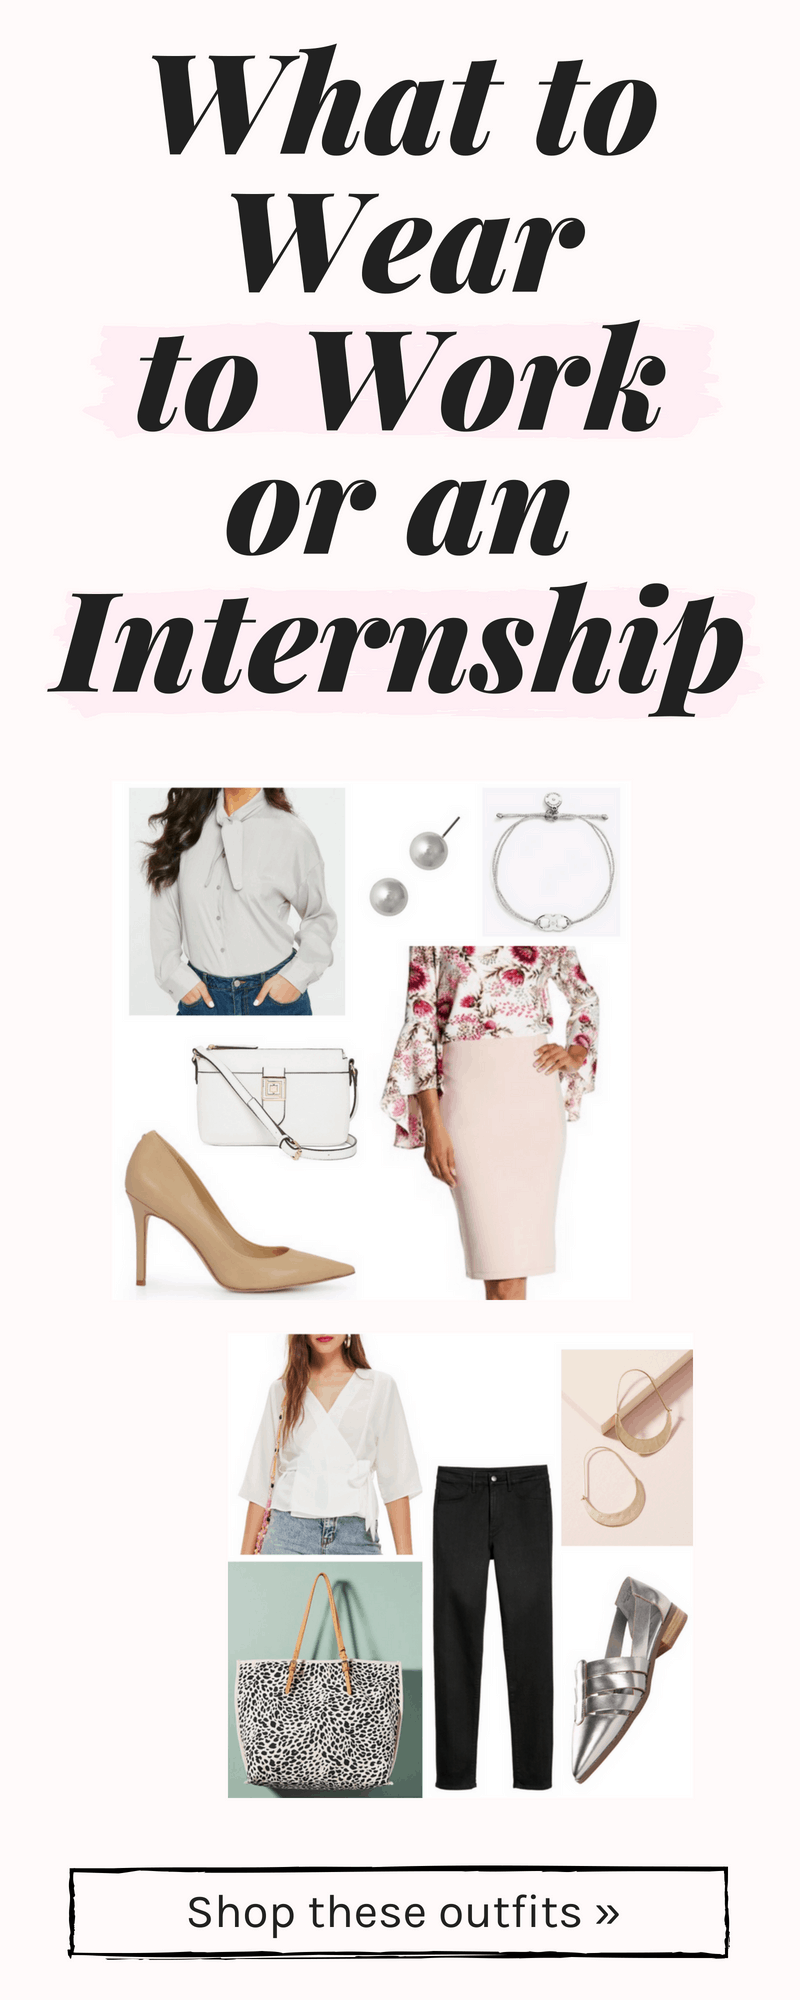 What to wear to work or an internship - outfit ideas and tips